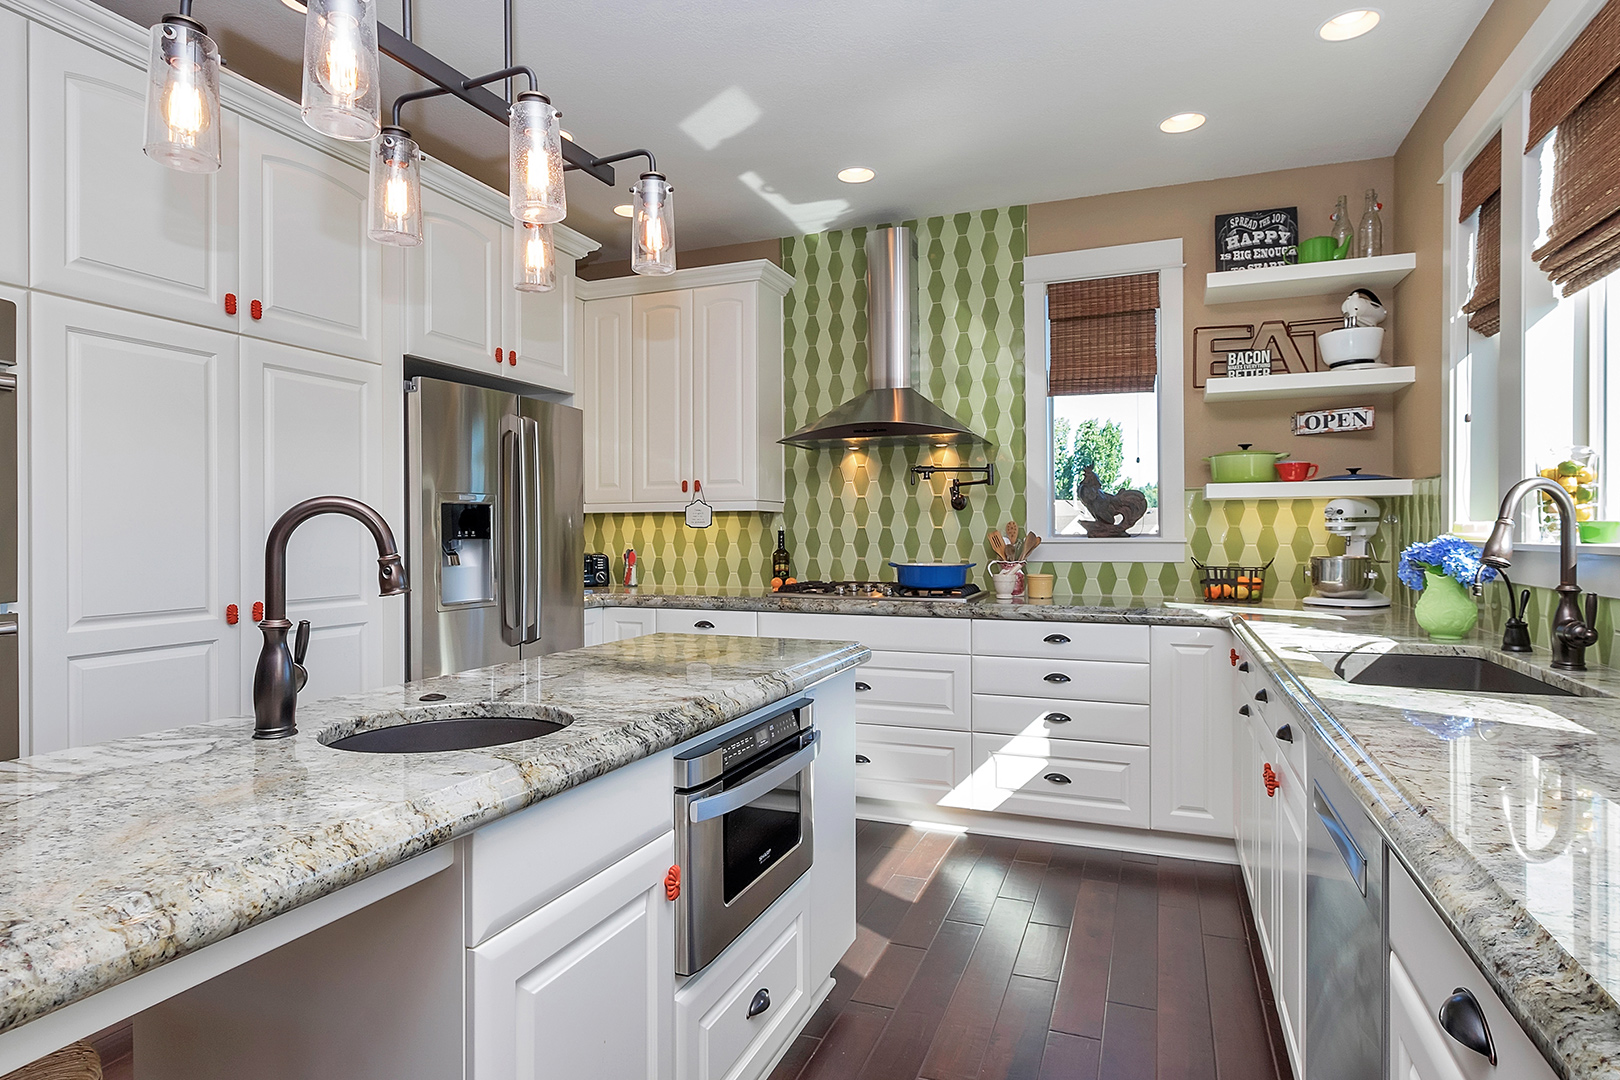 Where Your Money Goes In A Kitchen Remodel: West-salem-kitchen-remodel-2_29582749691_o